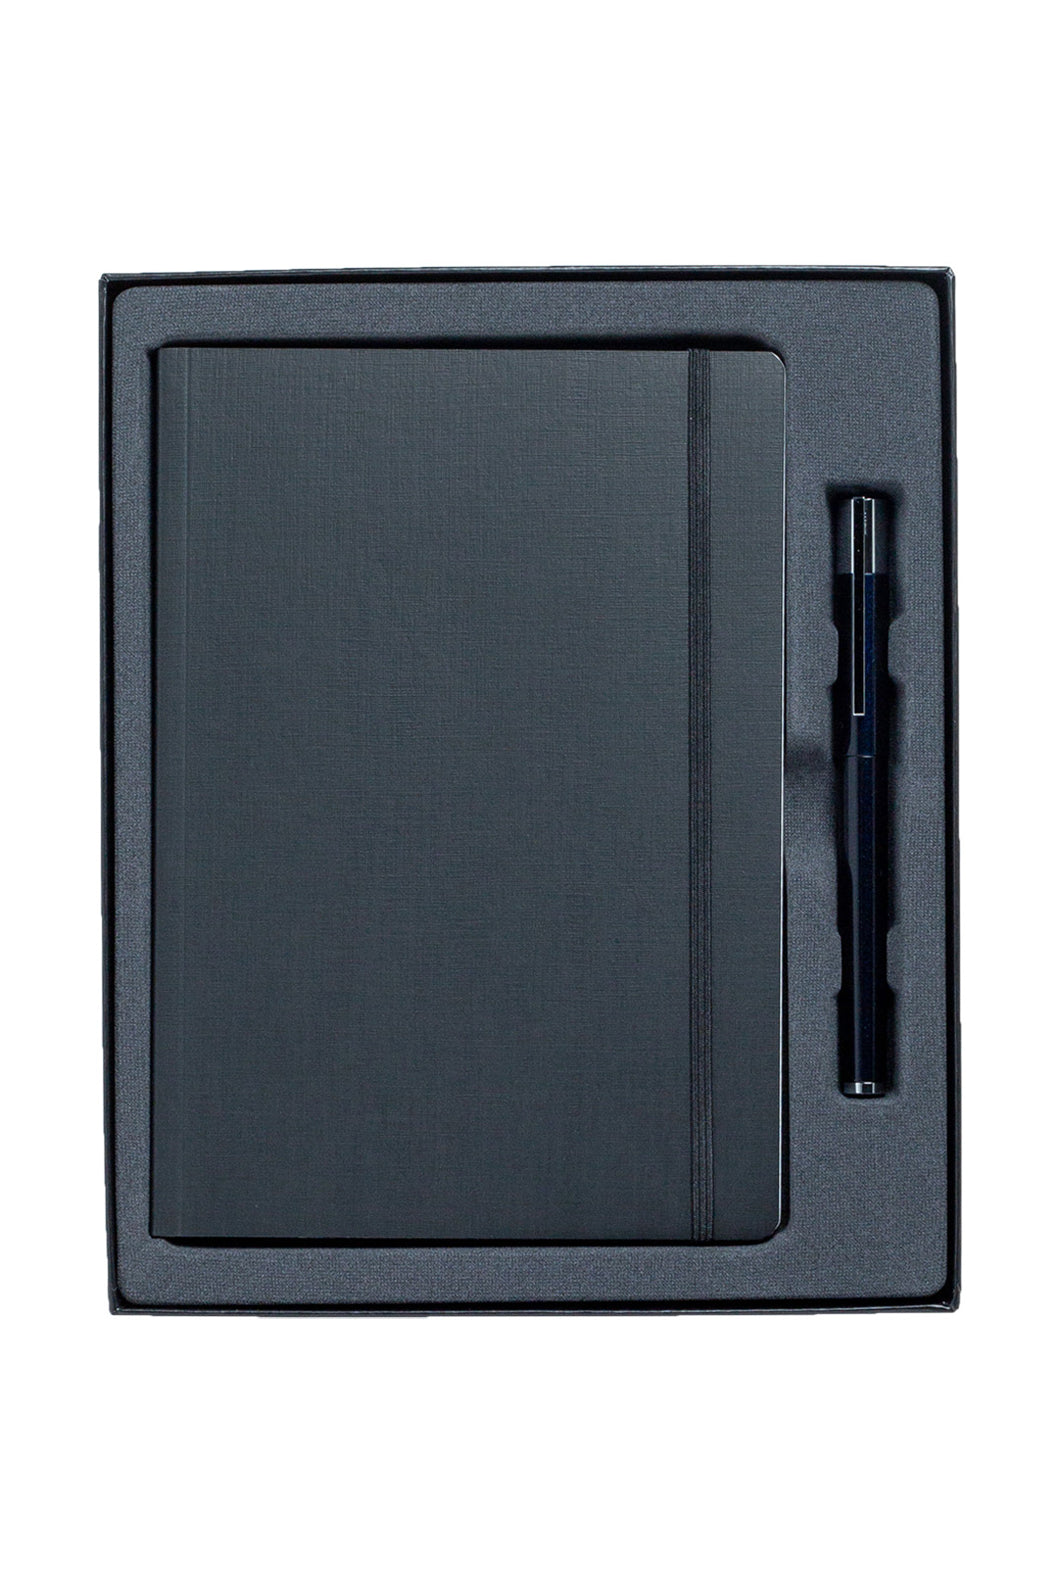 LAMY - Scala Blue Black Fountain Pen with A5 Fabriano Boutique Notebook